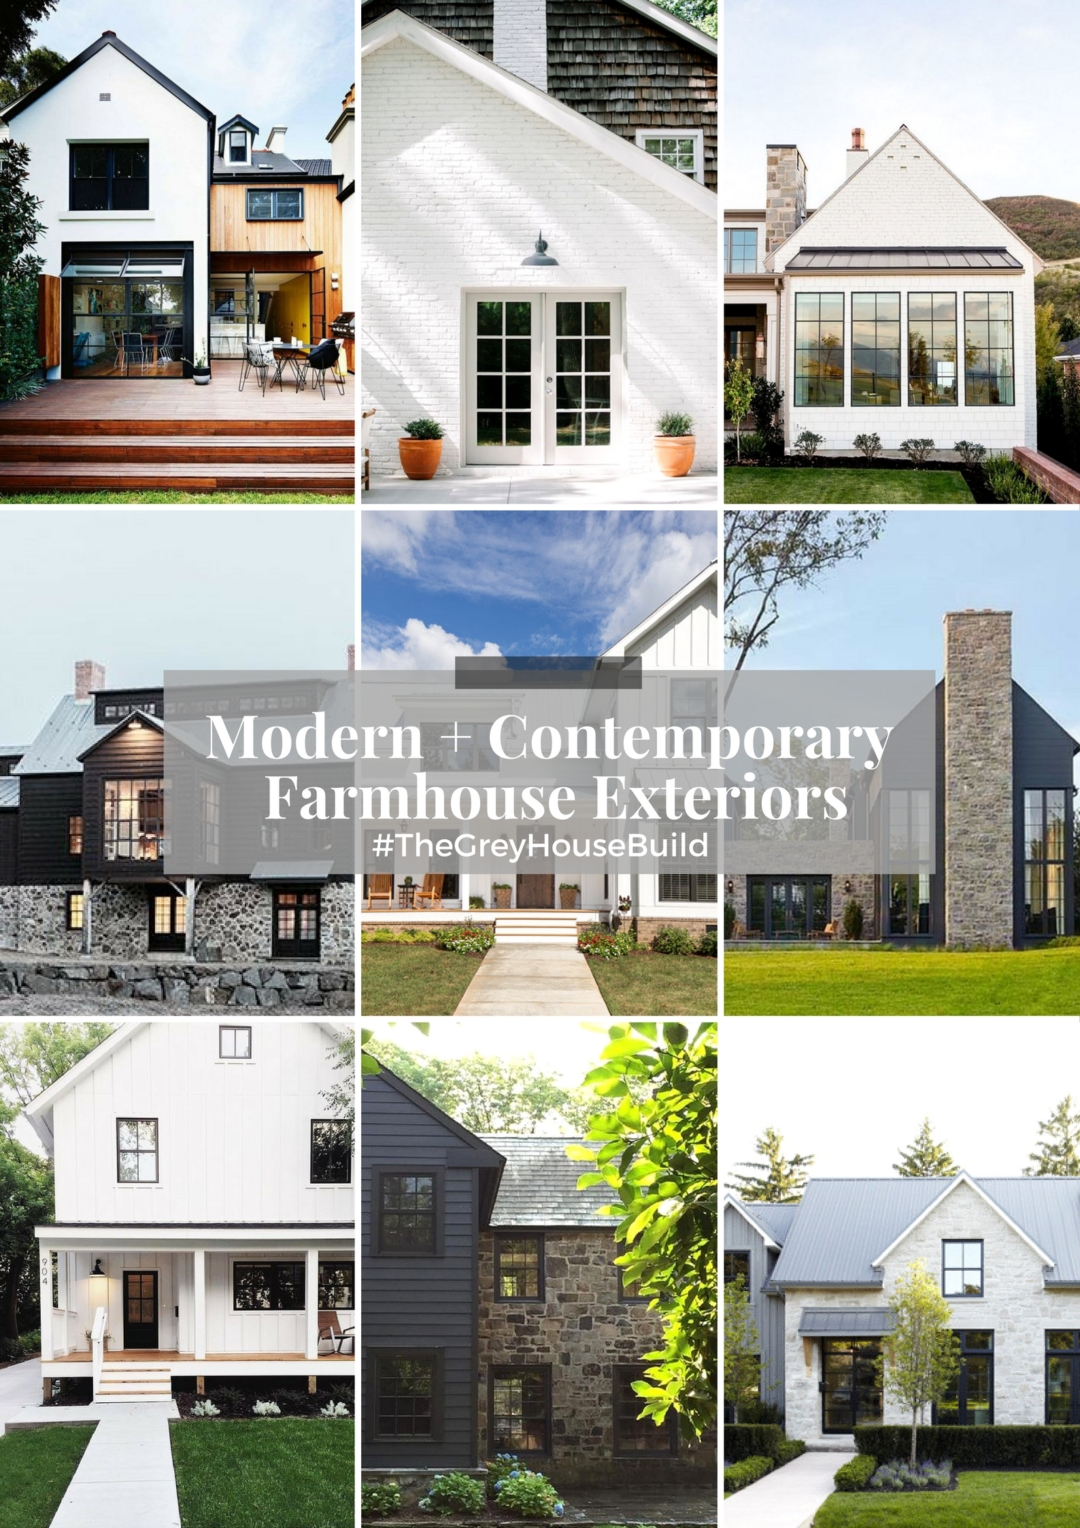 Home Exteriors: Contemporary + Modern Farmhouse Exteriors